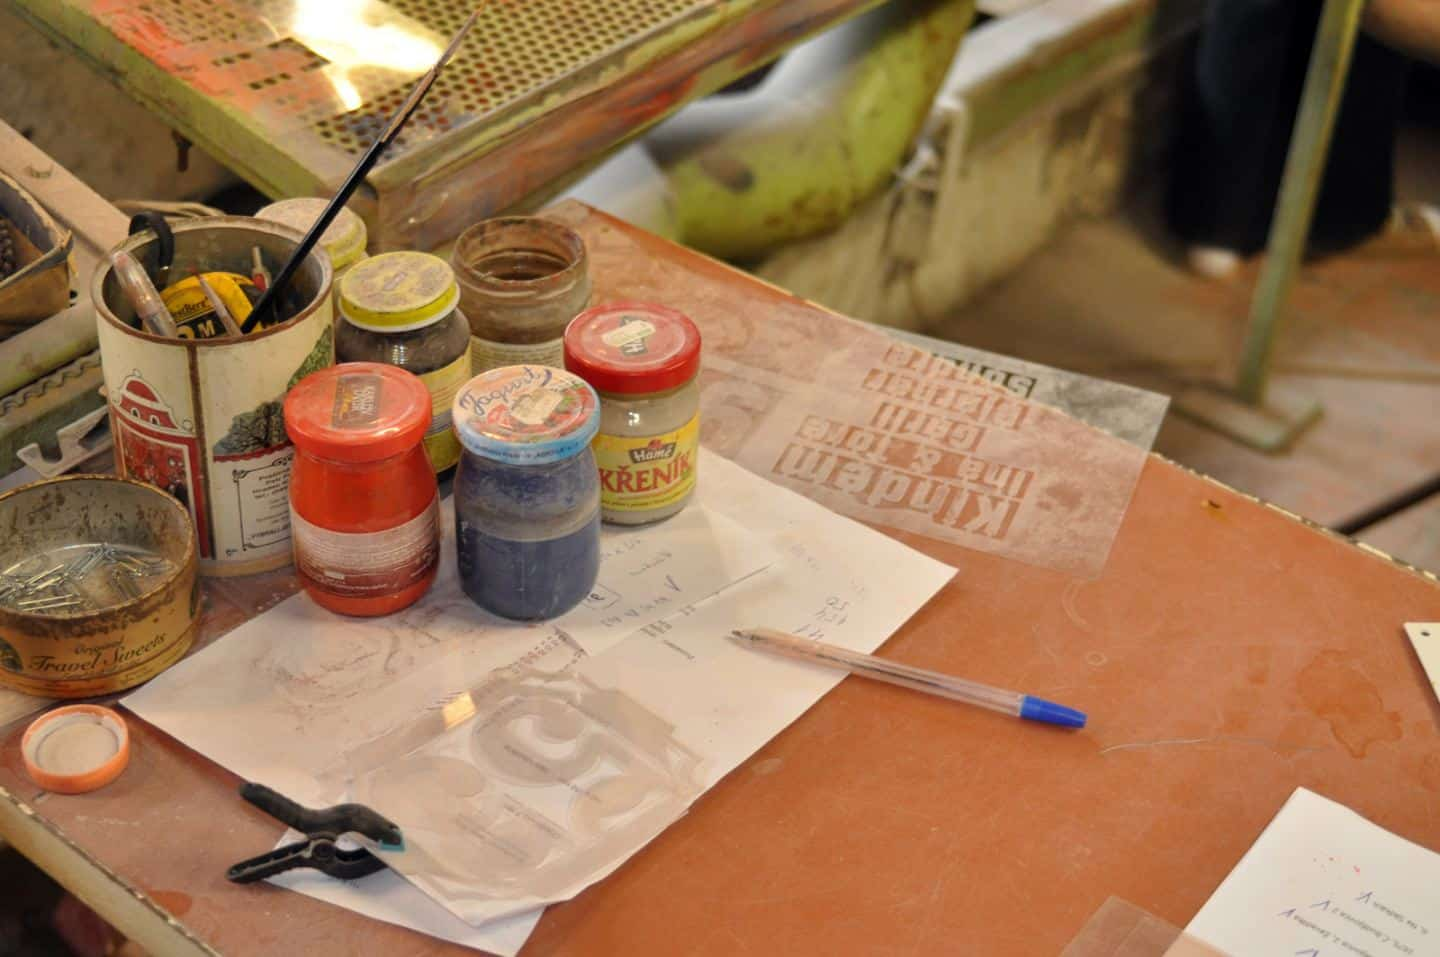 Production of enamel signs for homes and businesses by Ramsign. Paints and stencils on a work bench